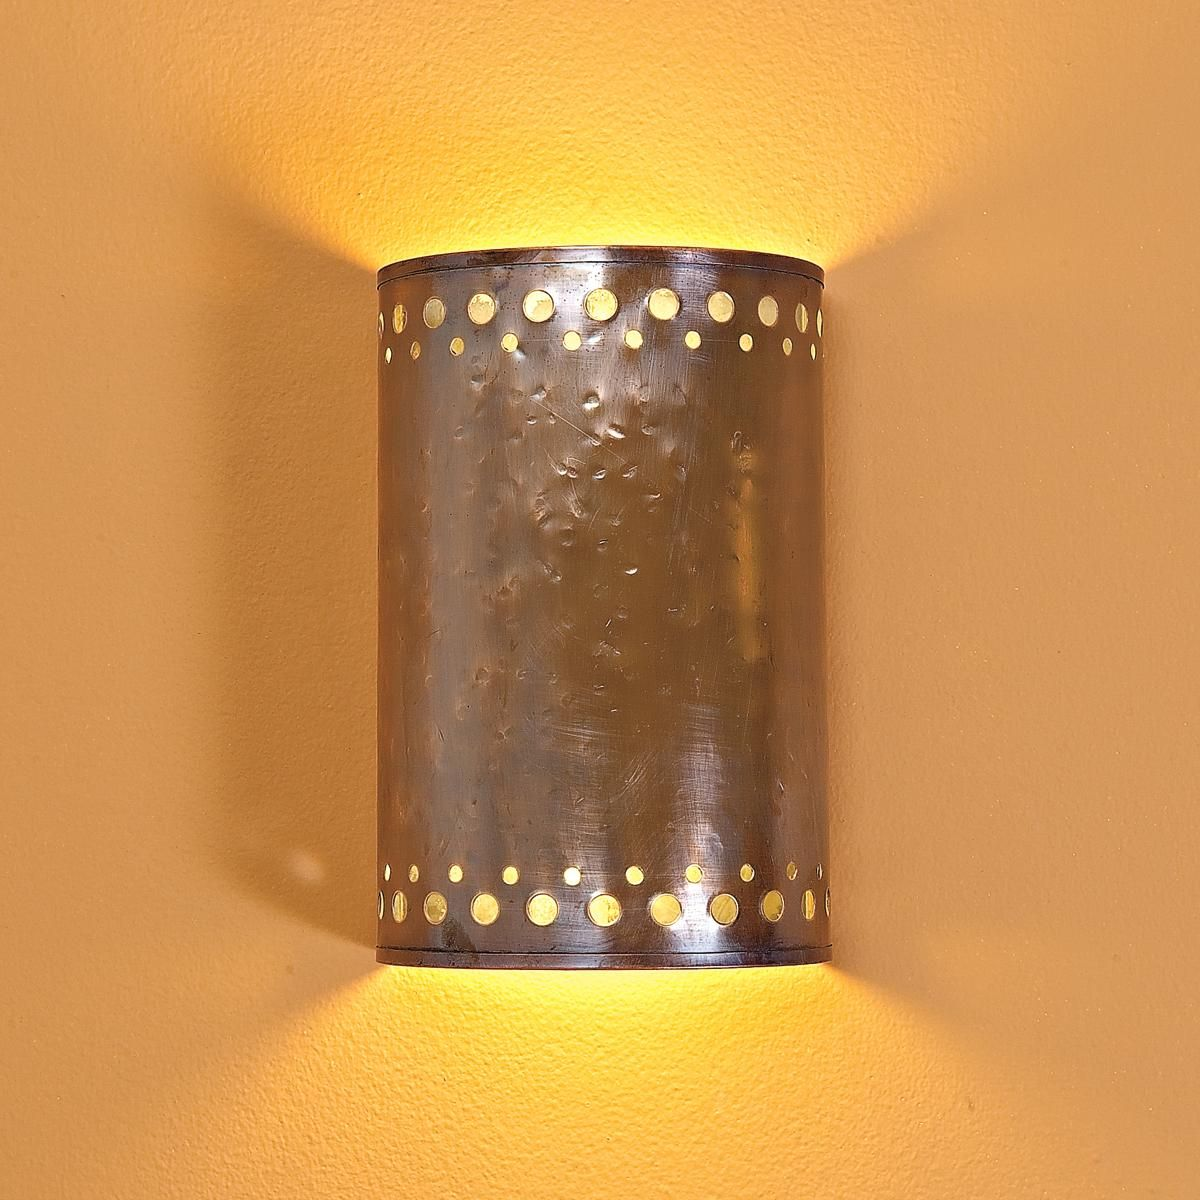 Hammered Copper Indoor Wall Sconce Indoor Wall Sconces Vintage Wall Sconces Wall Sconces